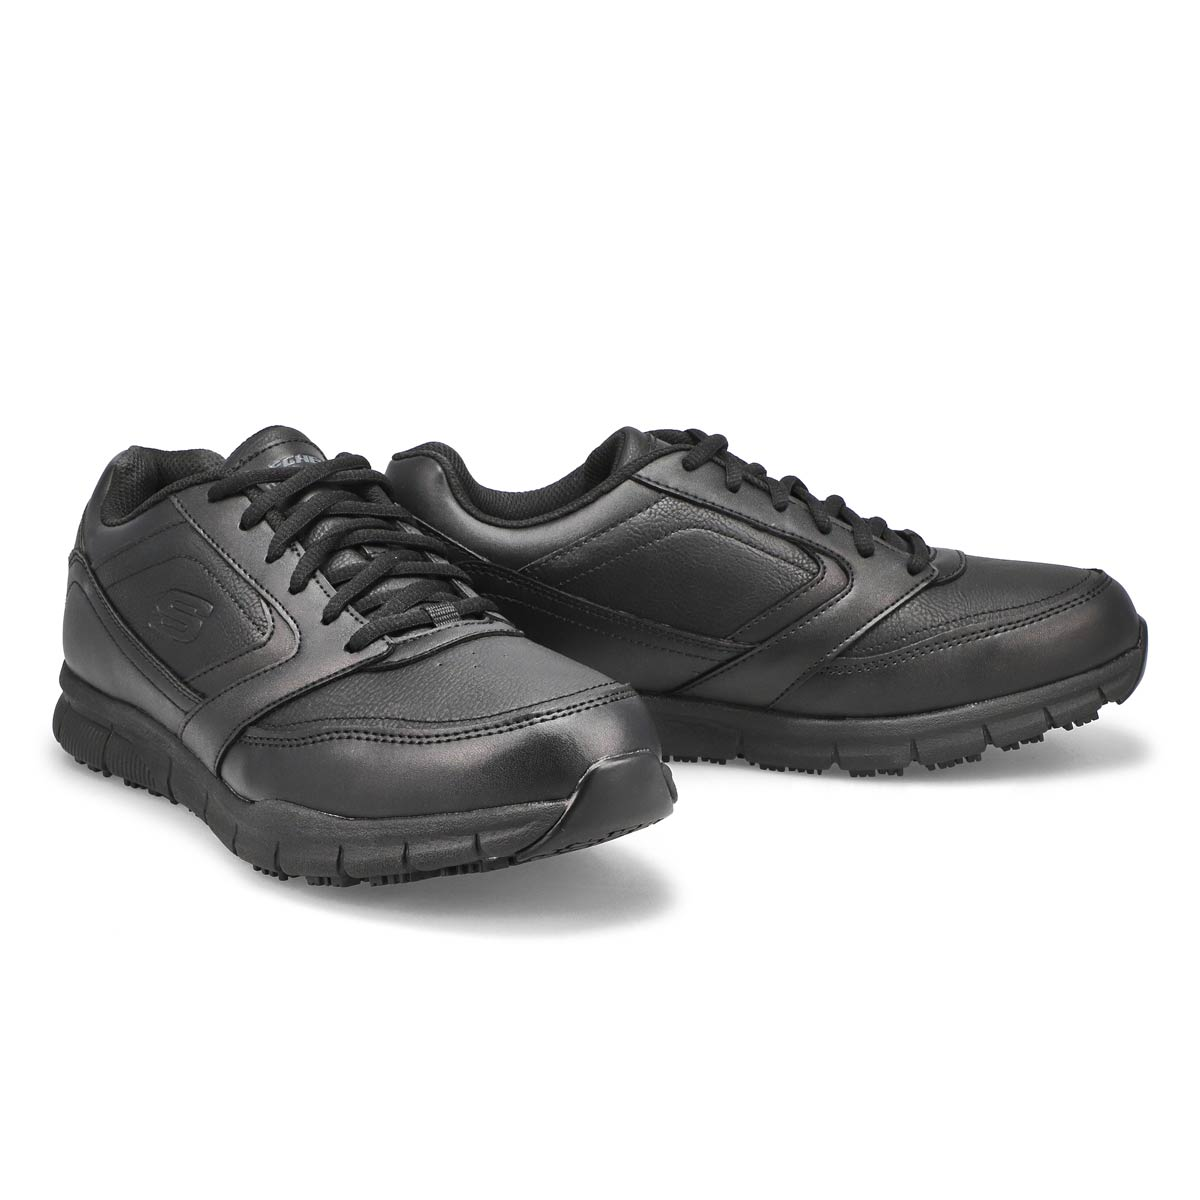 Mns Nampa blk lace up non-slip sneaker